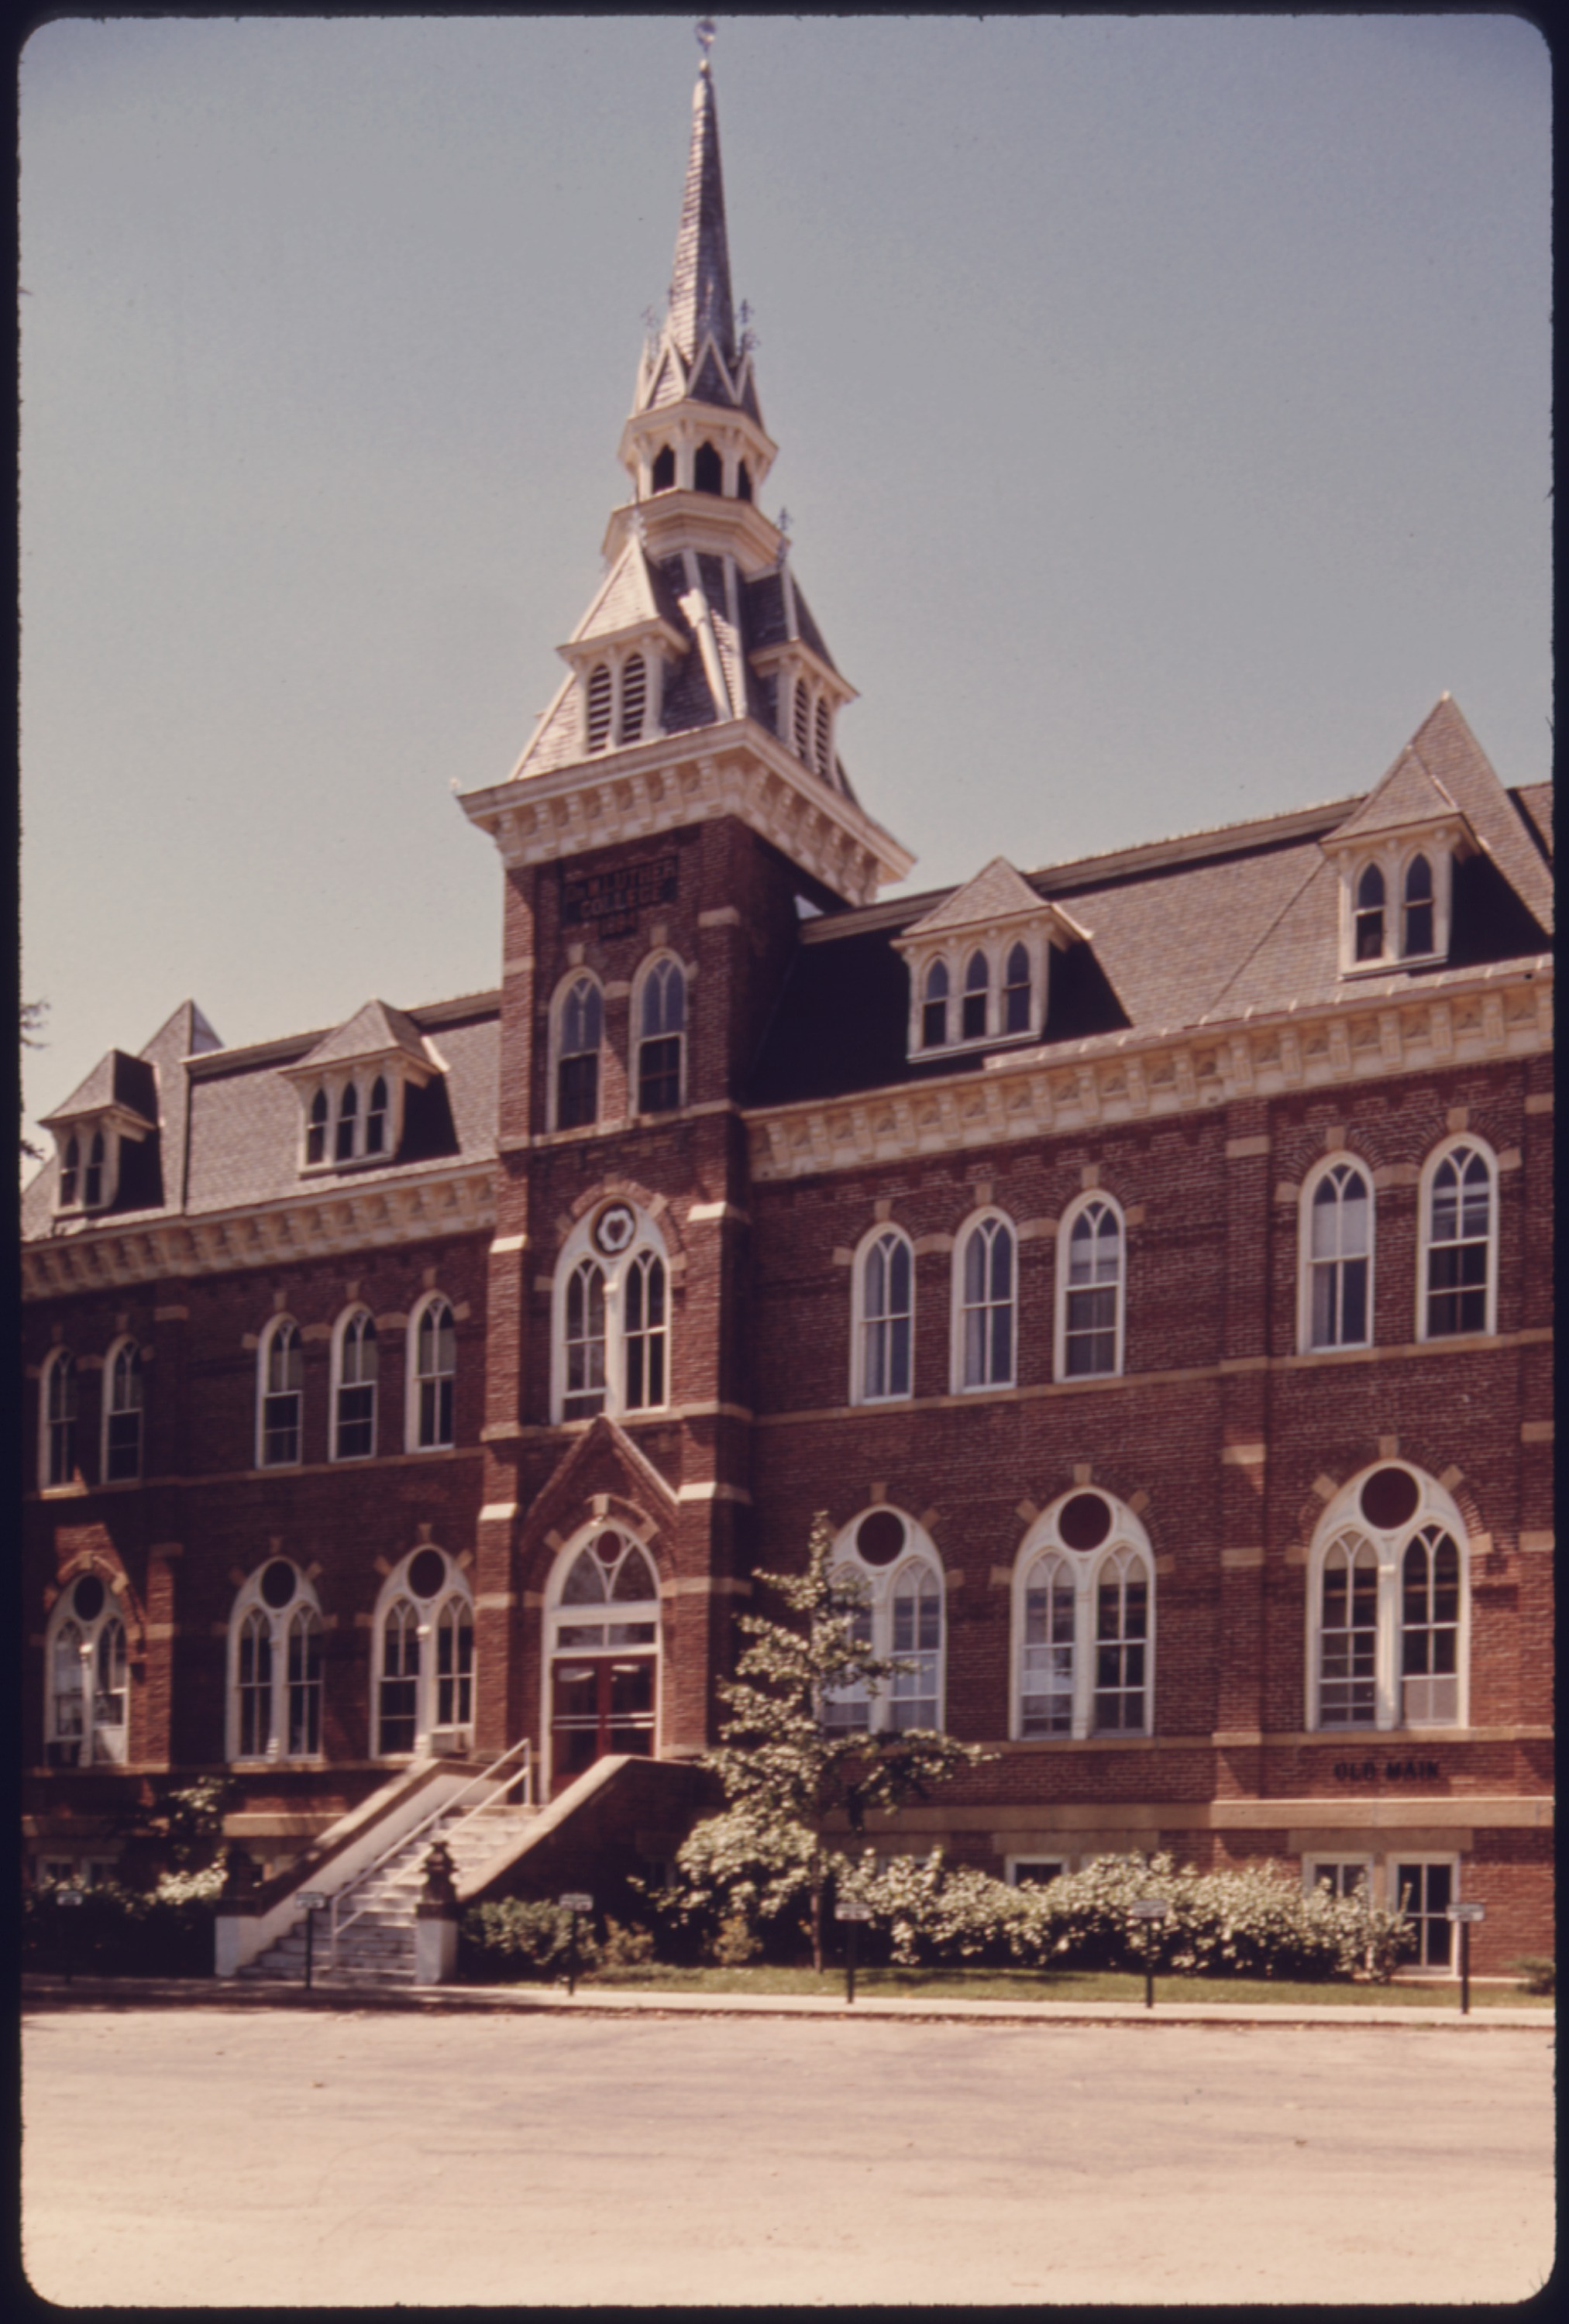 The Original Rider Waite Deck By Arthur Edward Waite: File:THE ORIGINAL BUILDING OF DR. MARTIN LUTHER COLLEGE